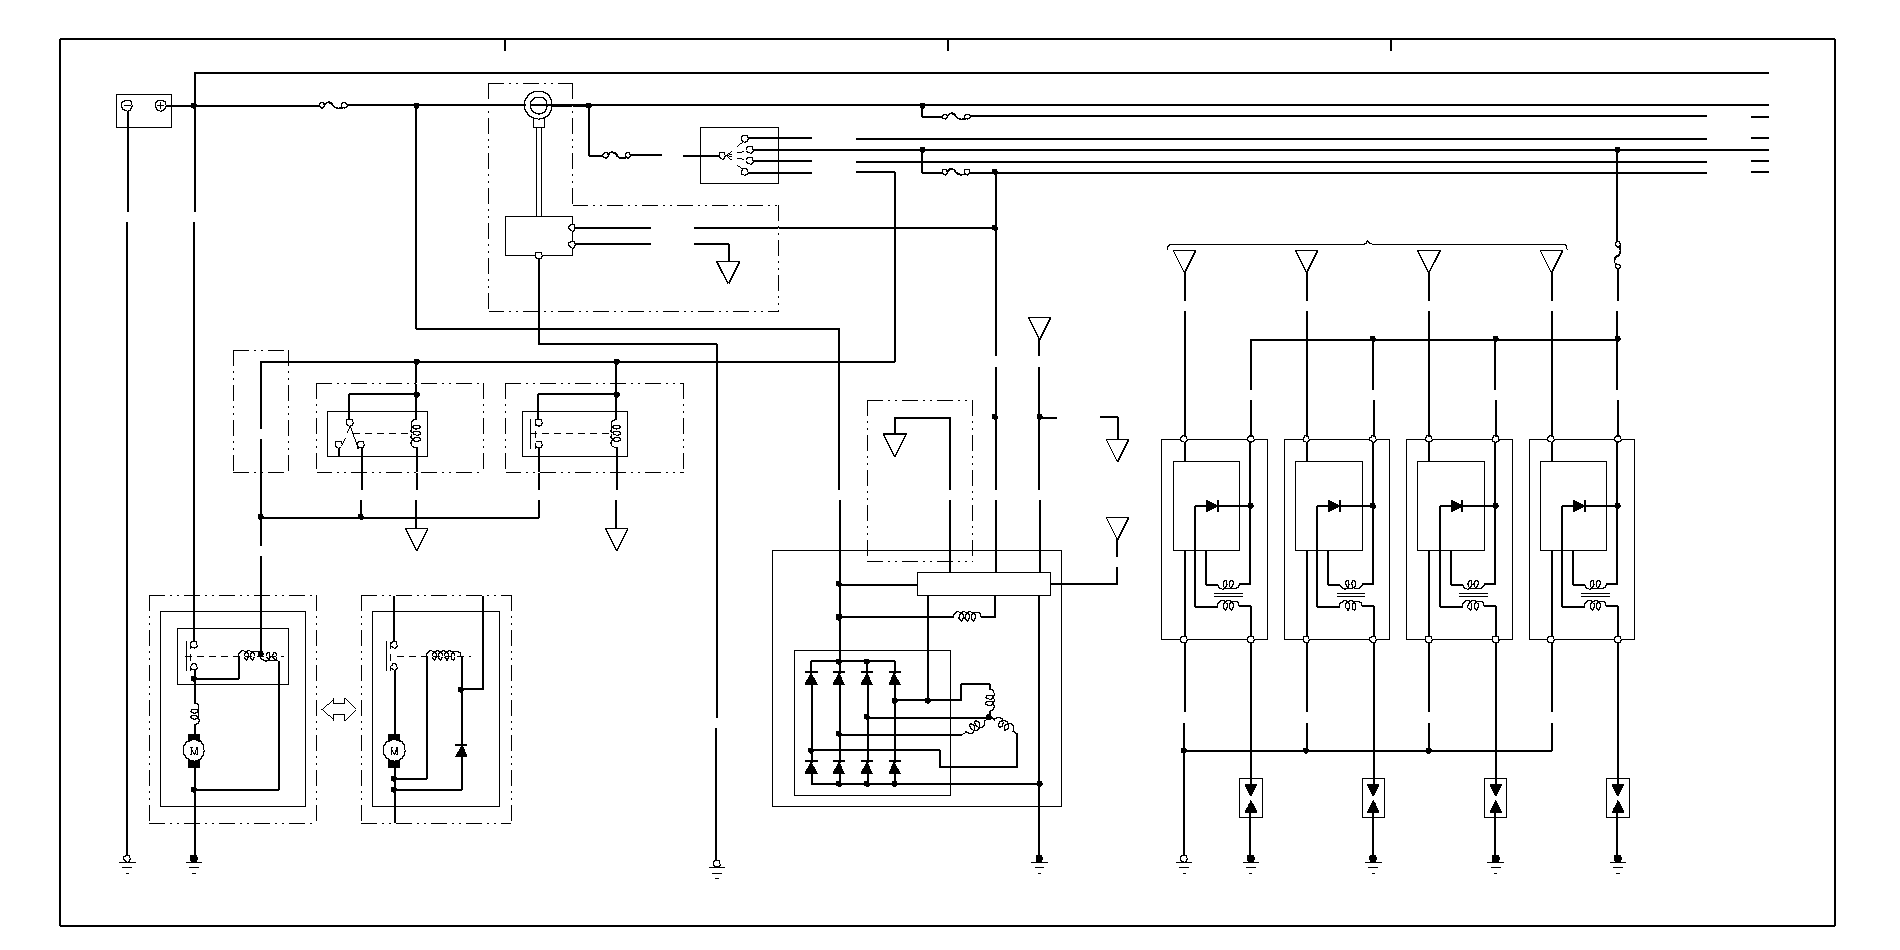 200t Honda Cr V Wiring Diagram : 30 Wiring Diagram Images